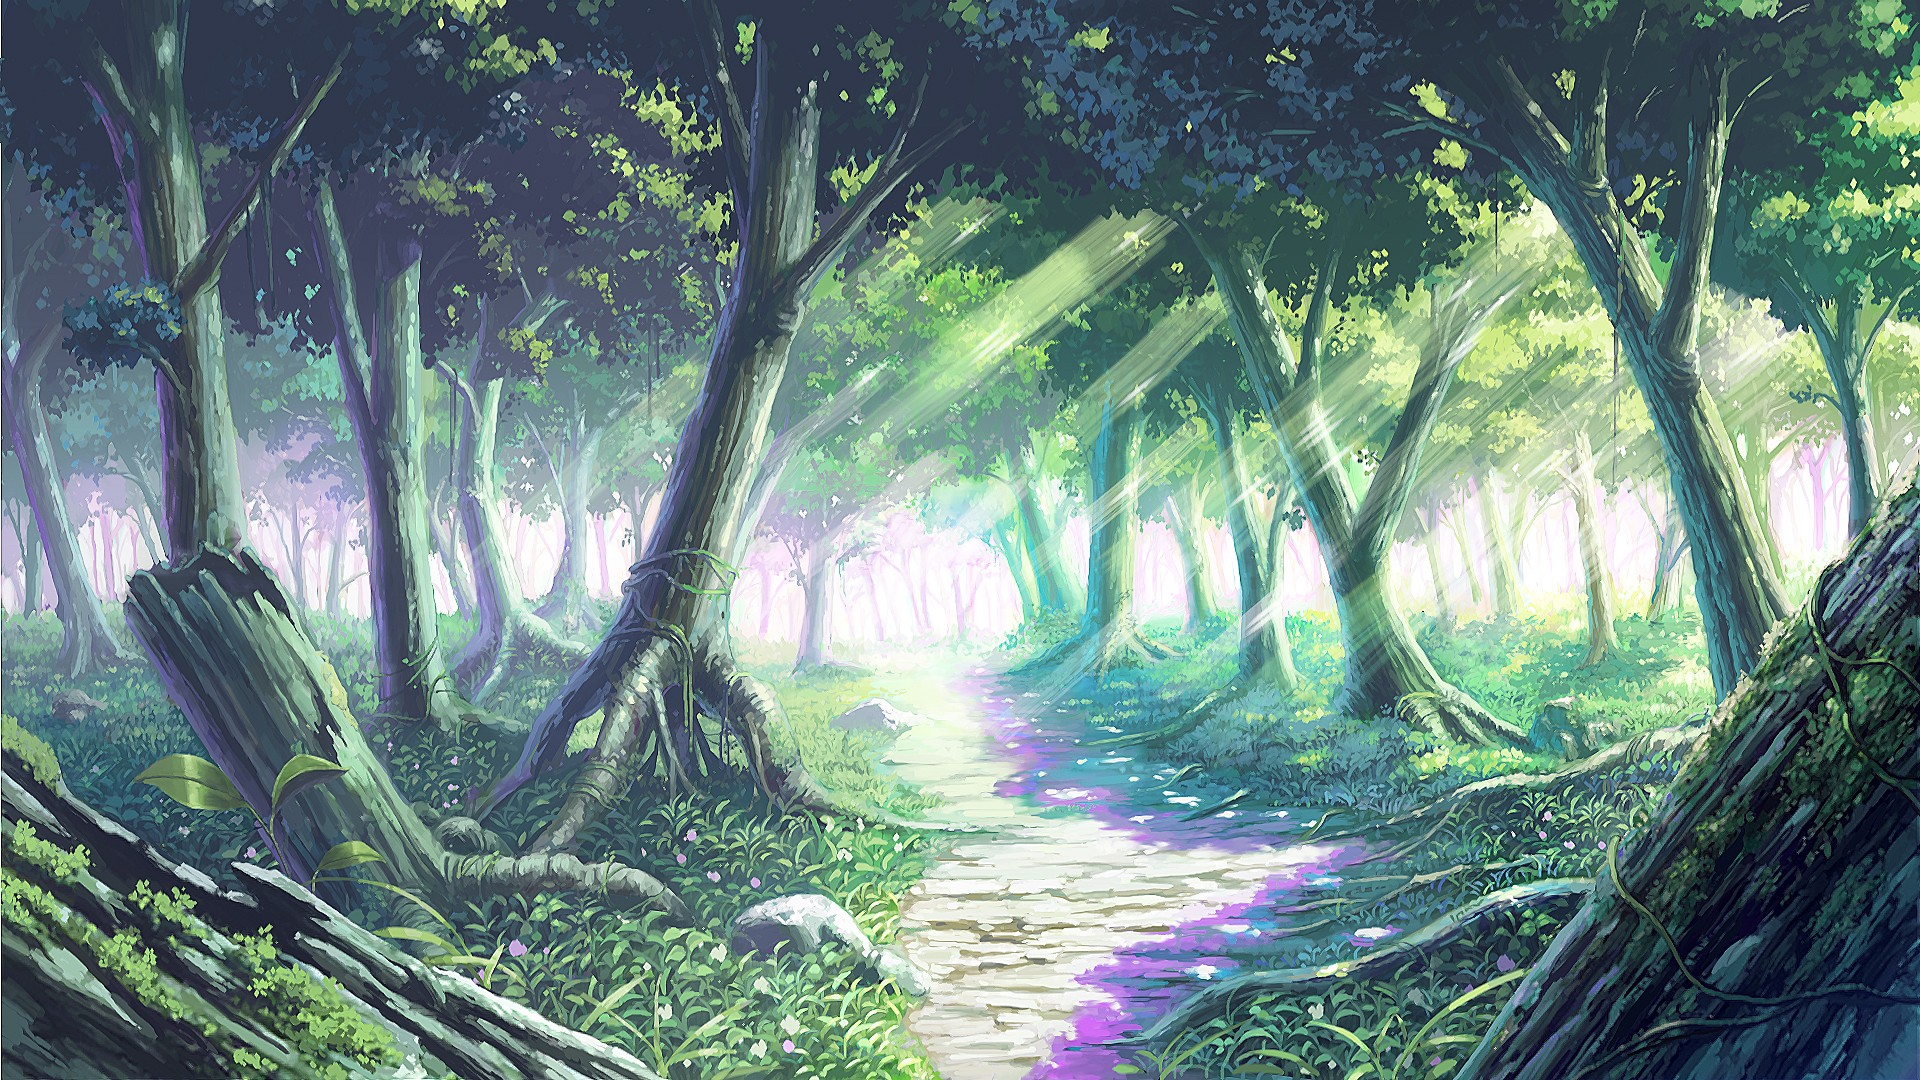 Drawn forest Drawn Nature Nature Spark Spark